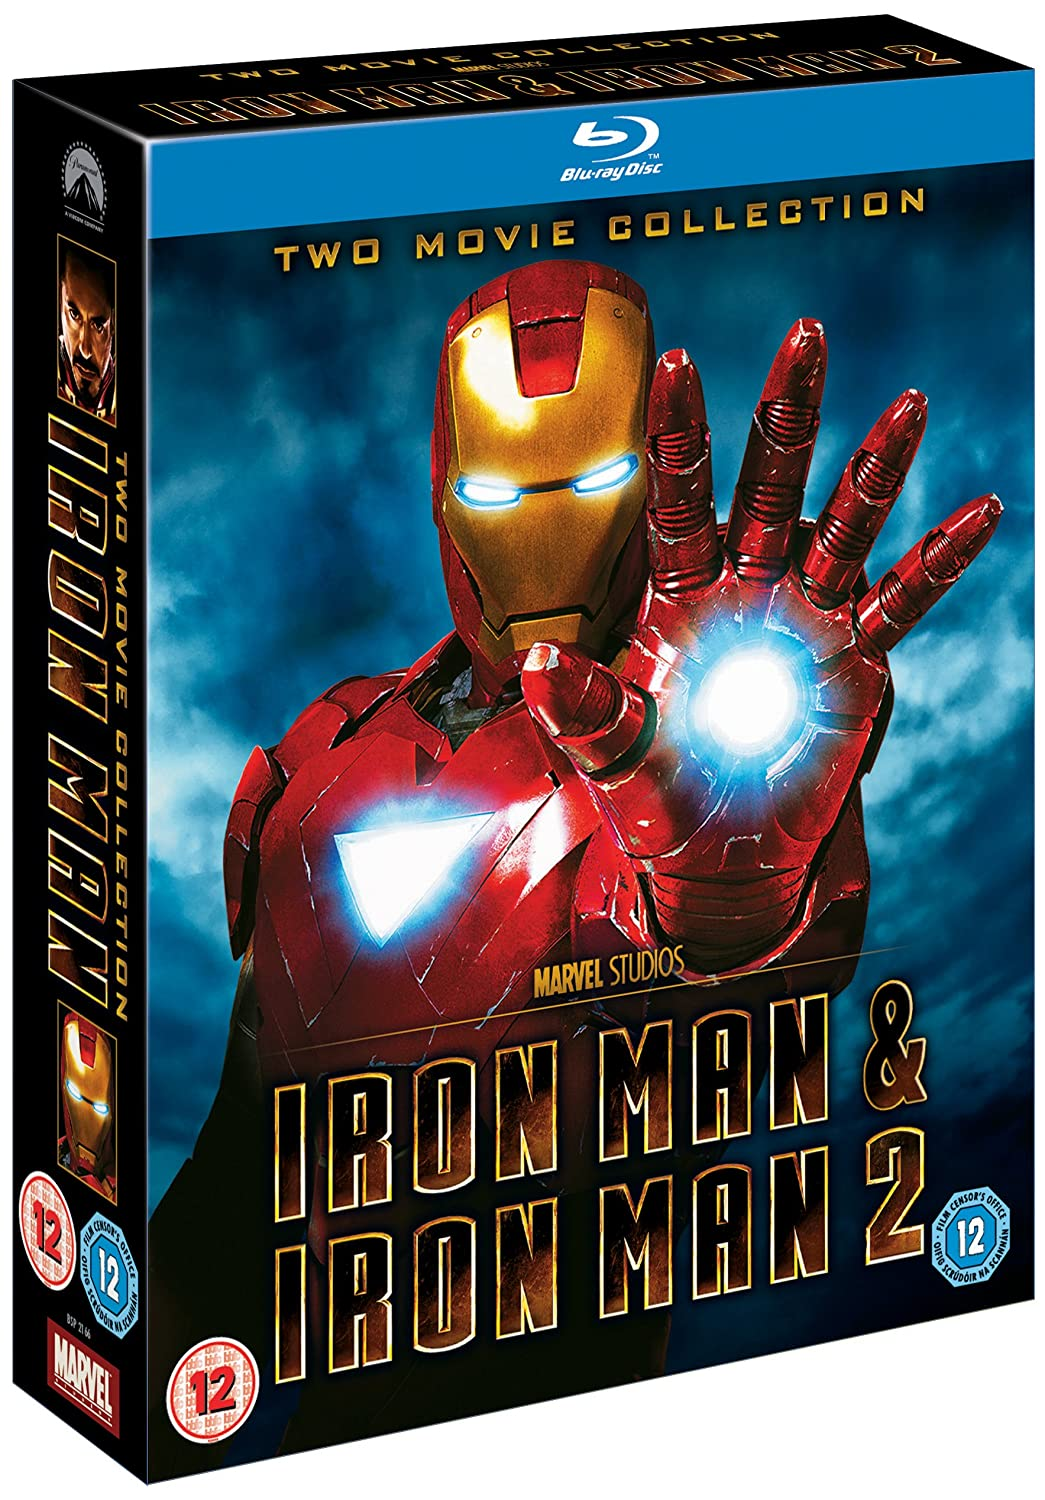 Iron Man 1 & 2 Double Pack Edizione: Regno Unito Reino Unido Blu-ray: Amazon.es: Movie, Film [Downey Jr.]: Cine y Series TV